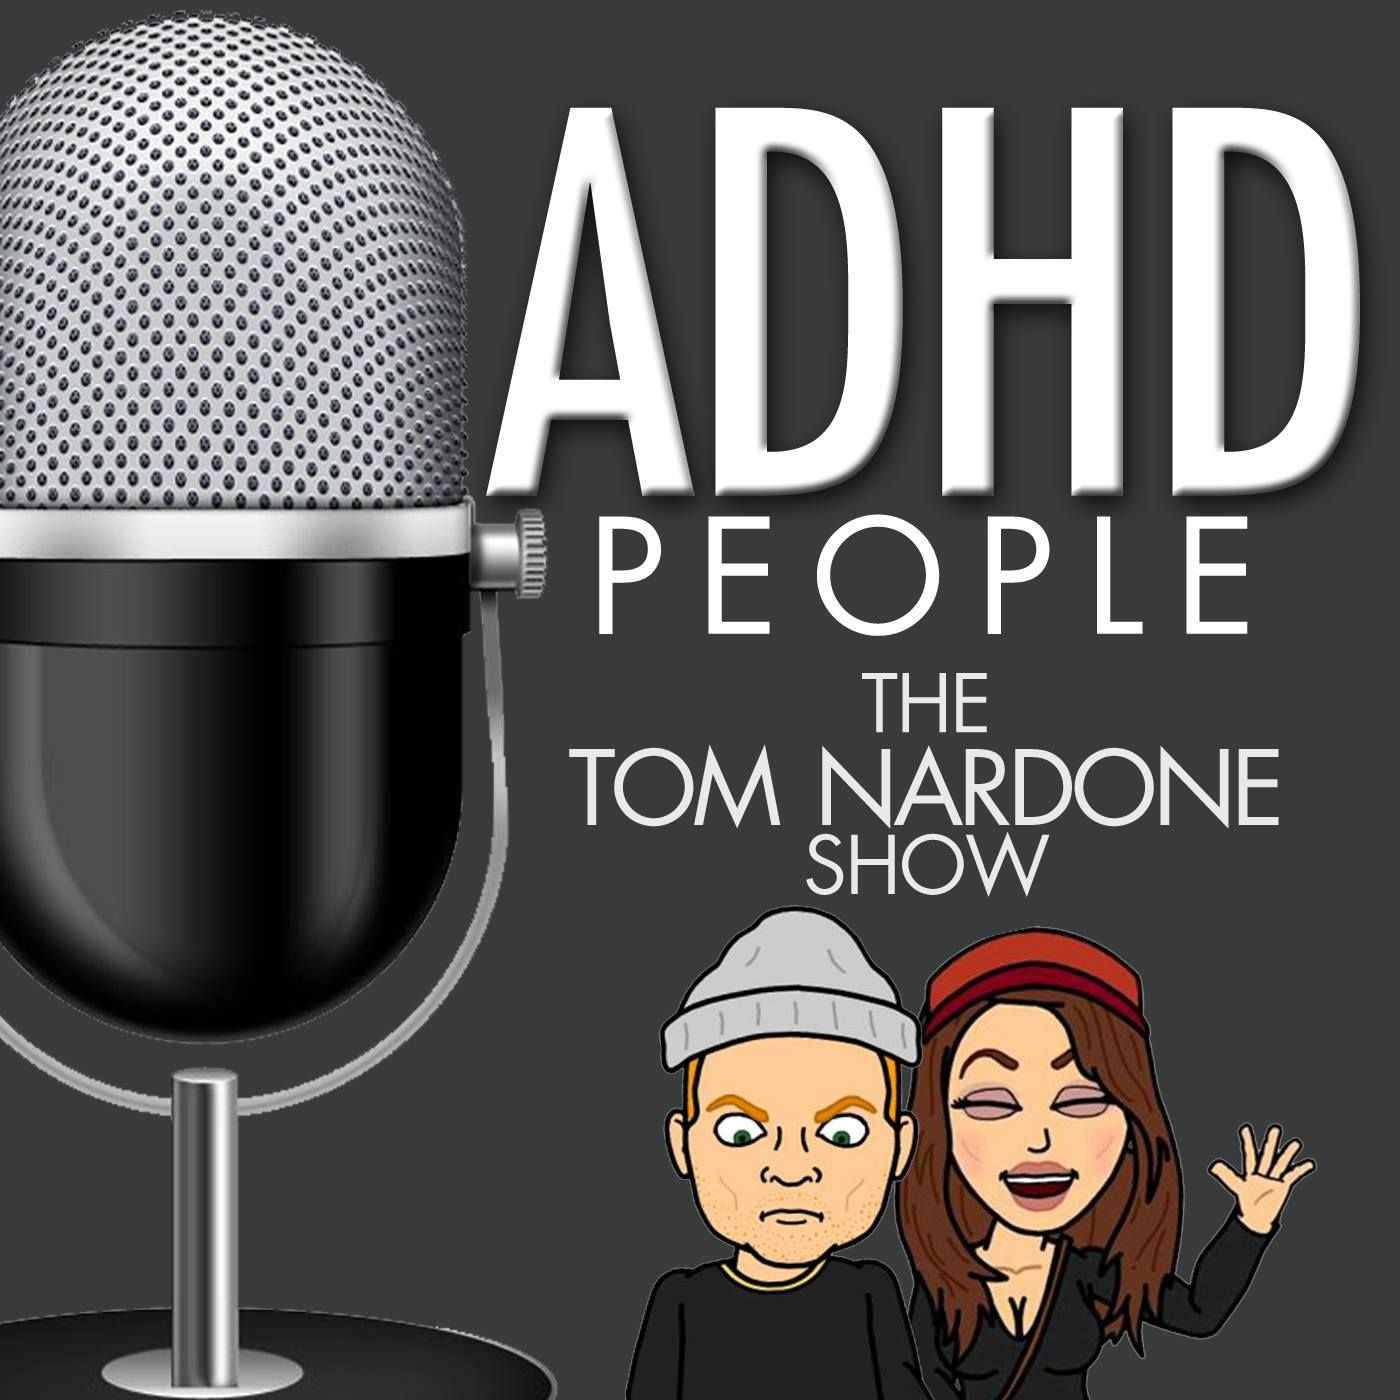 Lazy People Listen to this ADHD couple banter about being lazy verses being productive in a humorous way.